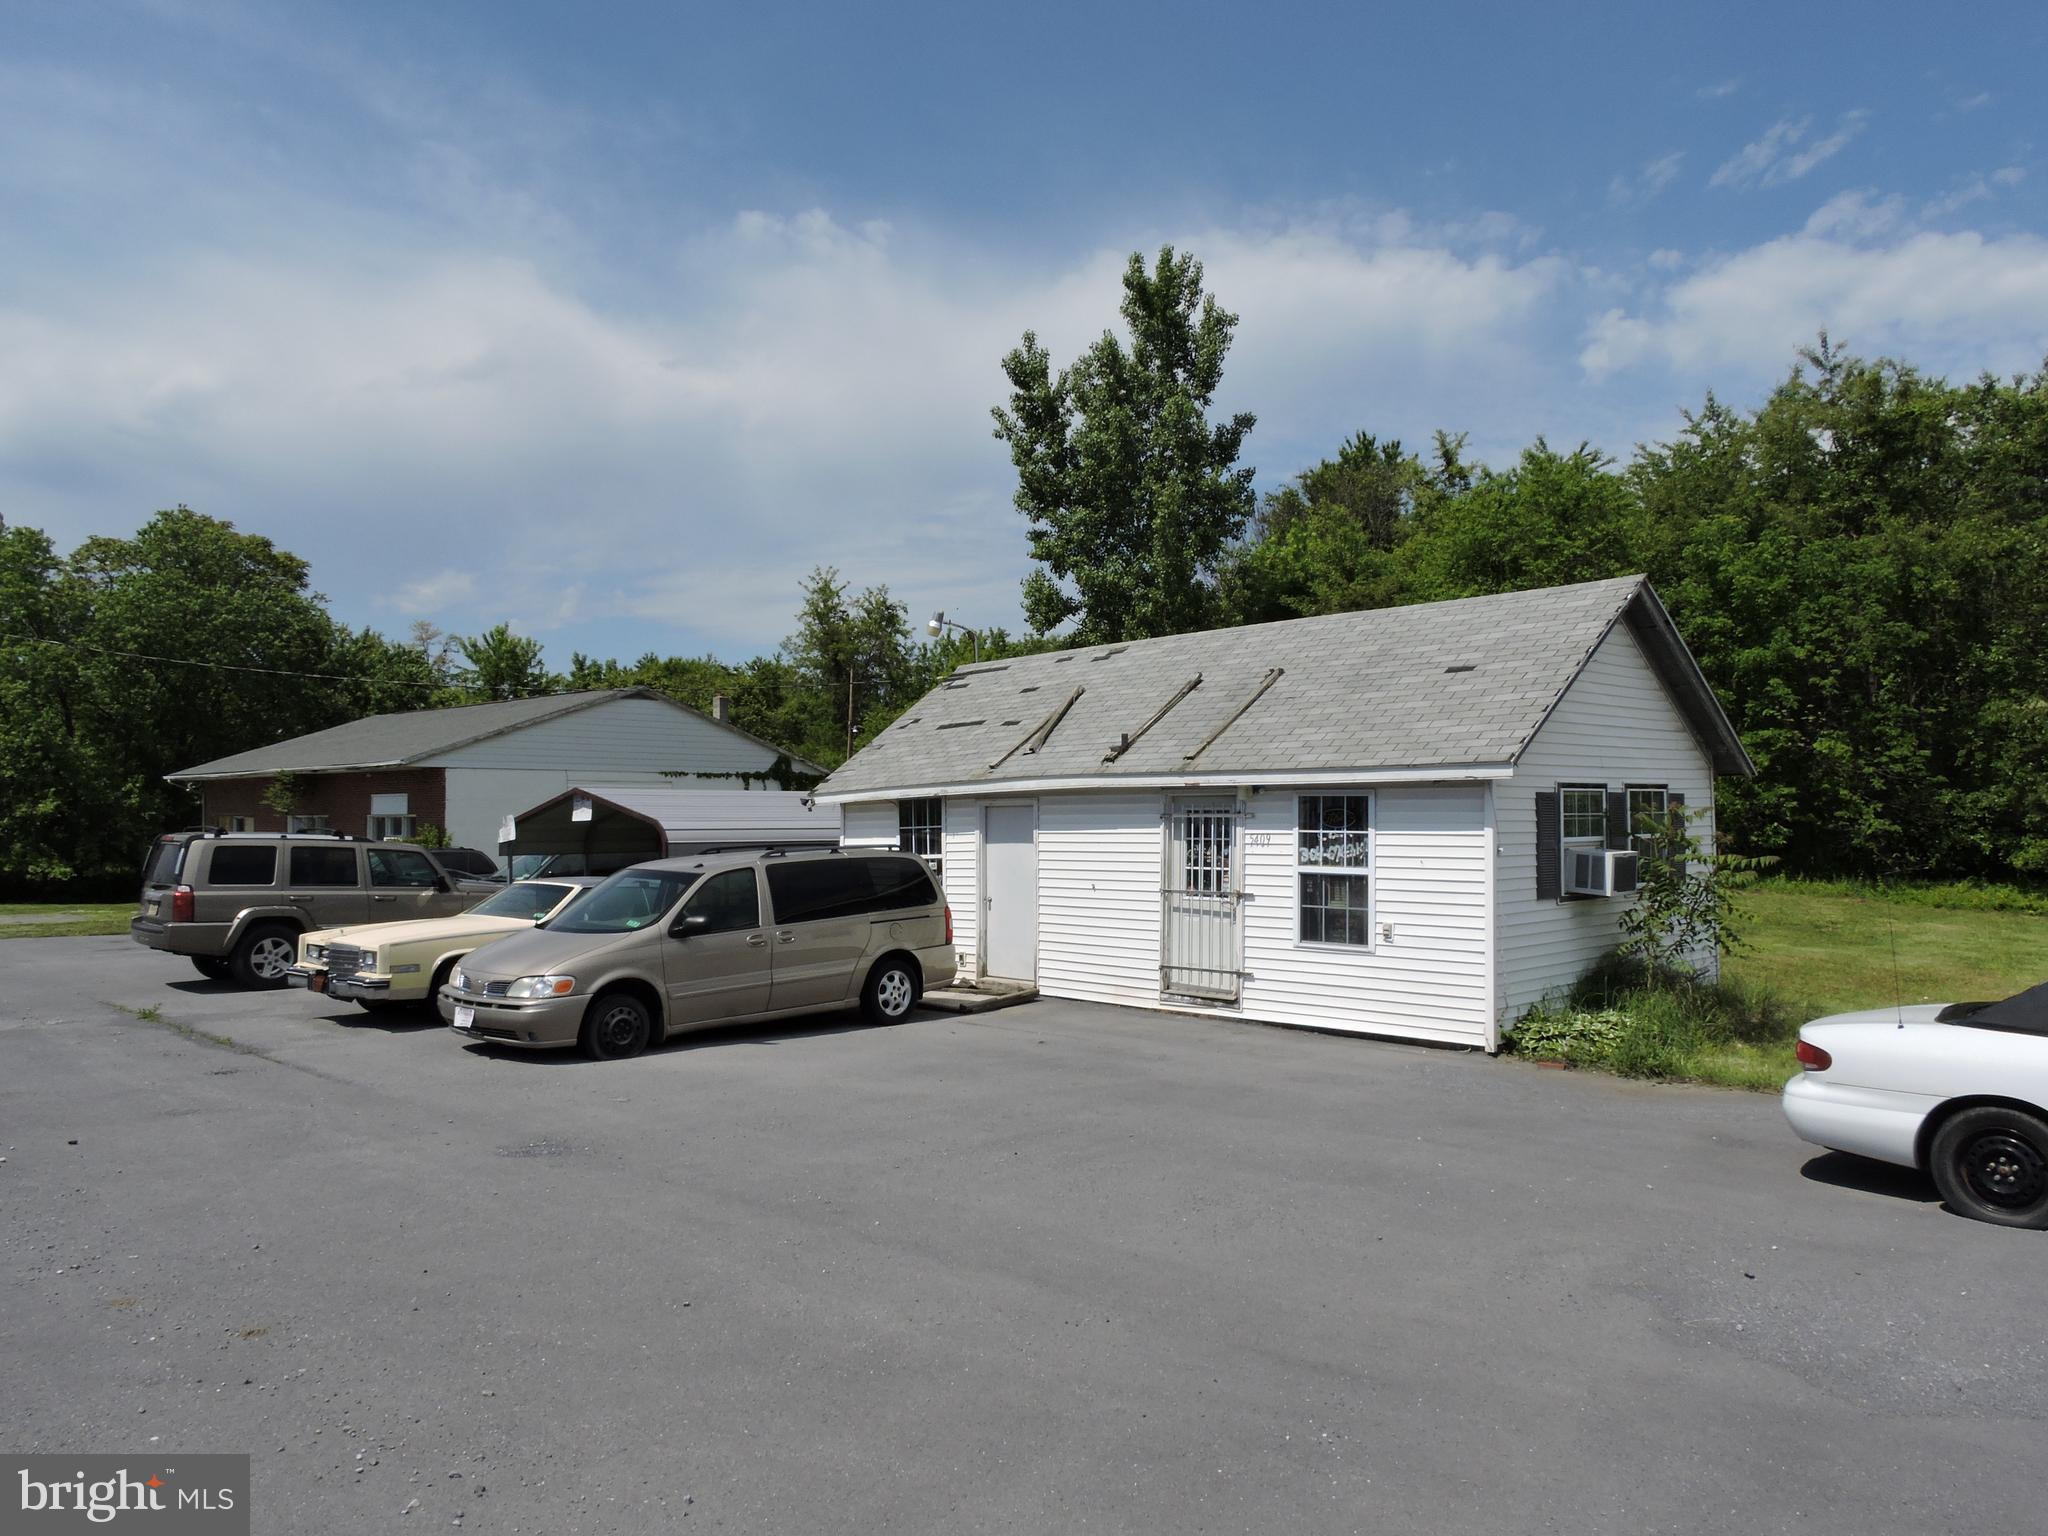 Tremendous value in this high visibility 5.34 +/- acre location next to the old Sheetz store at the center of Kearneysville. Large 50x60 building with 2 potential rental units and another 30x18 building that was historically used as a car lot. Convenient, easy access to Route 9 and Charles Town Road.